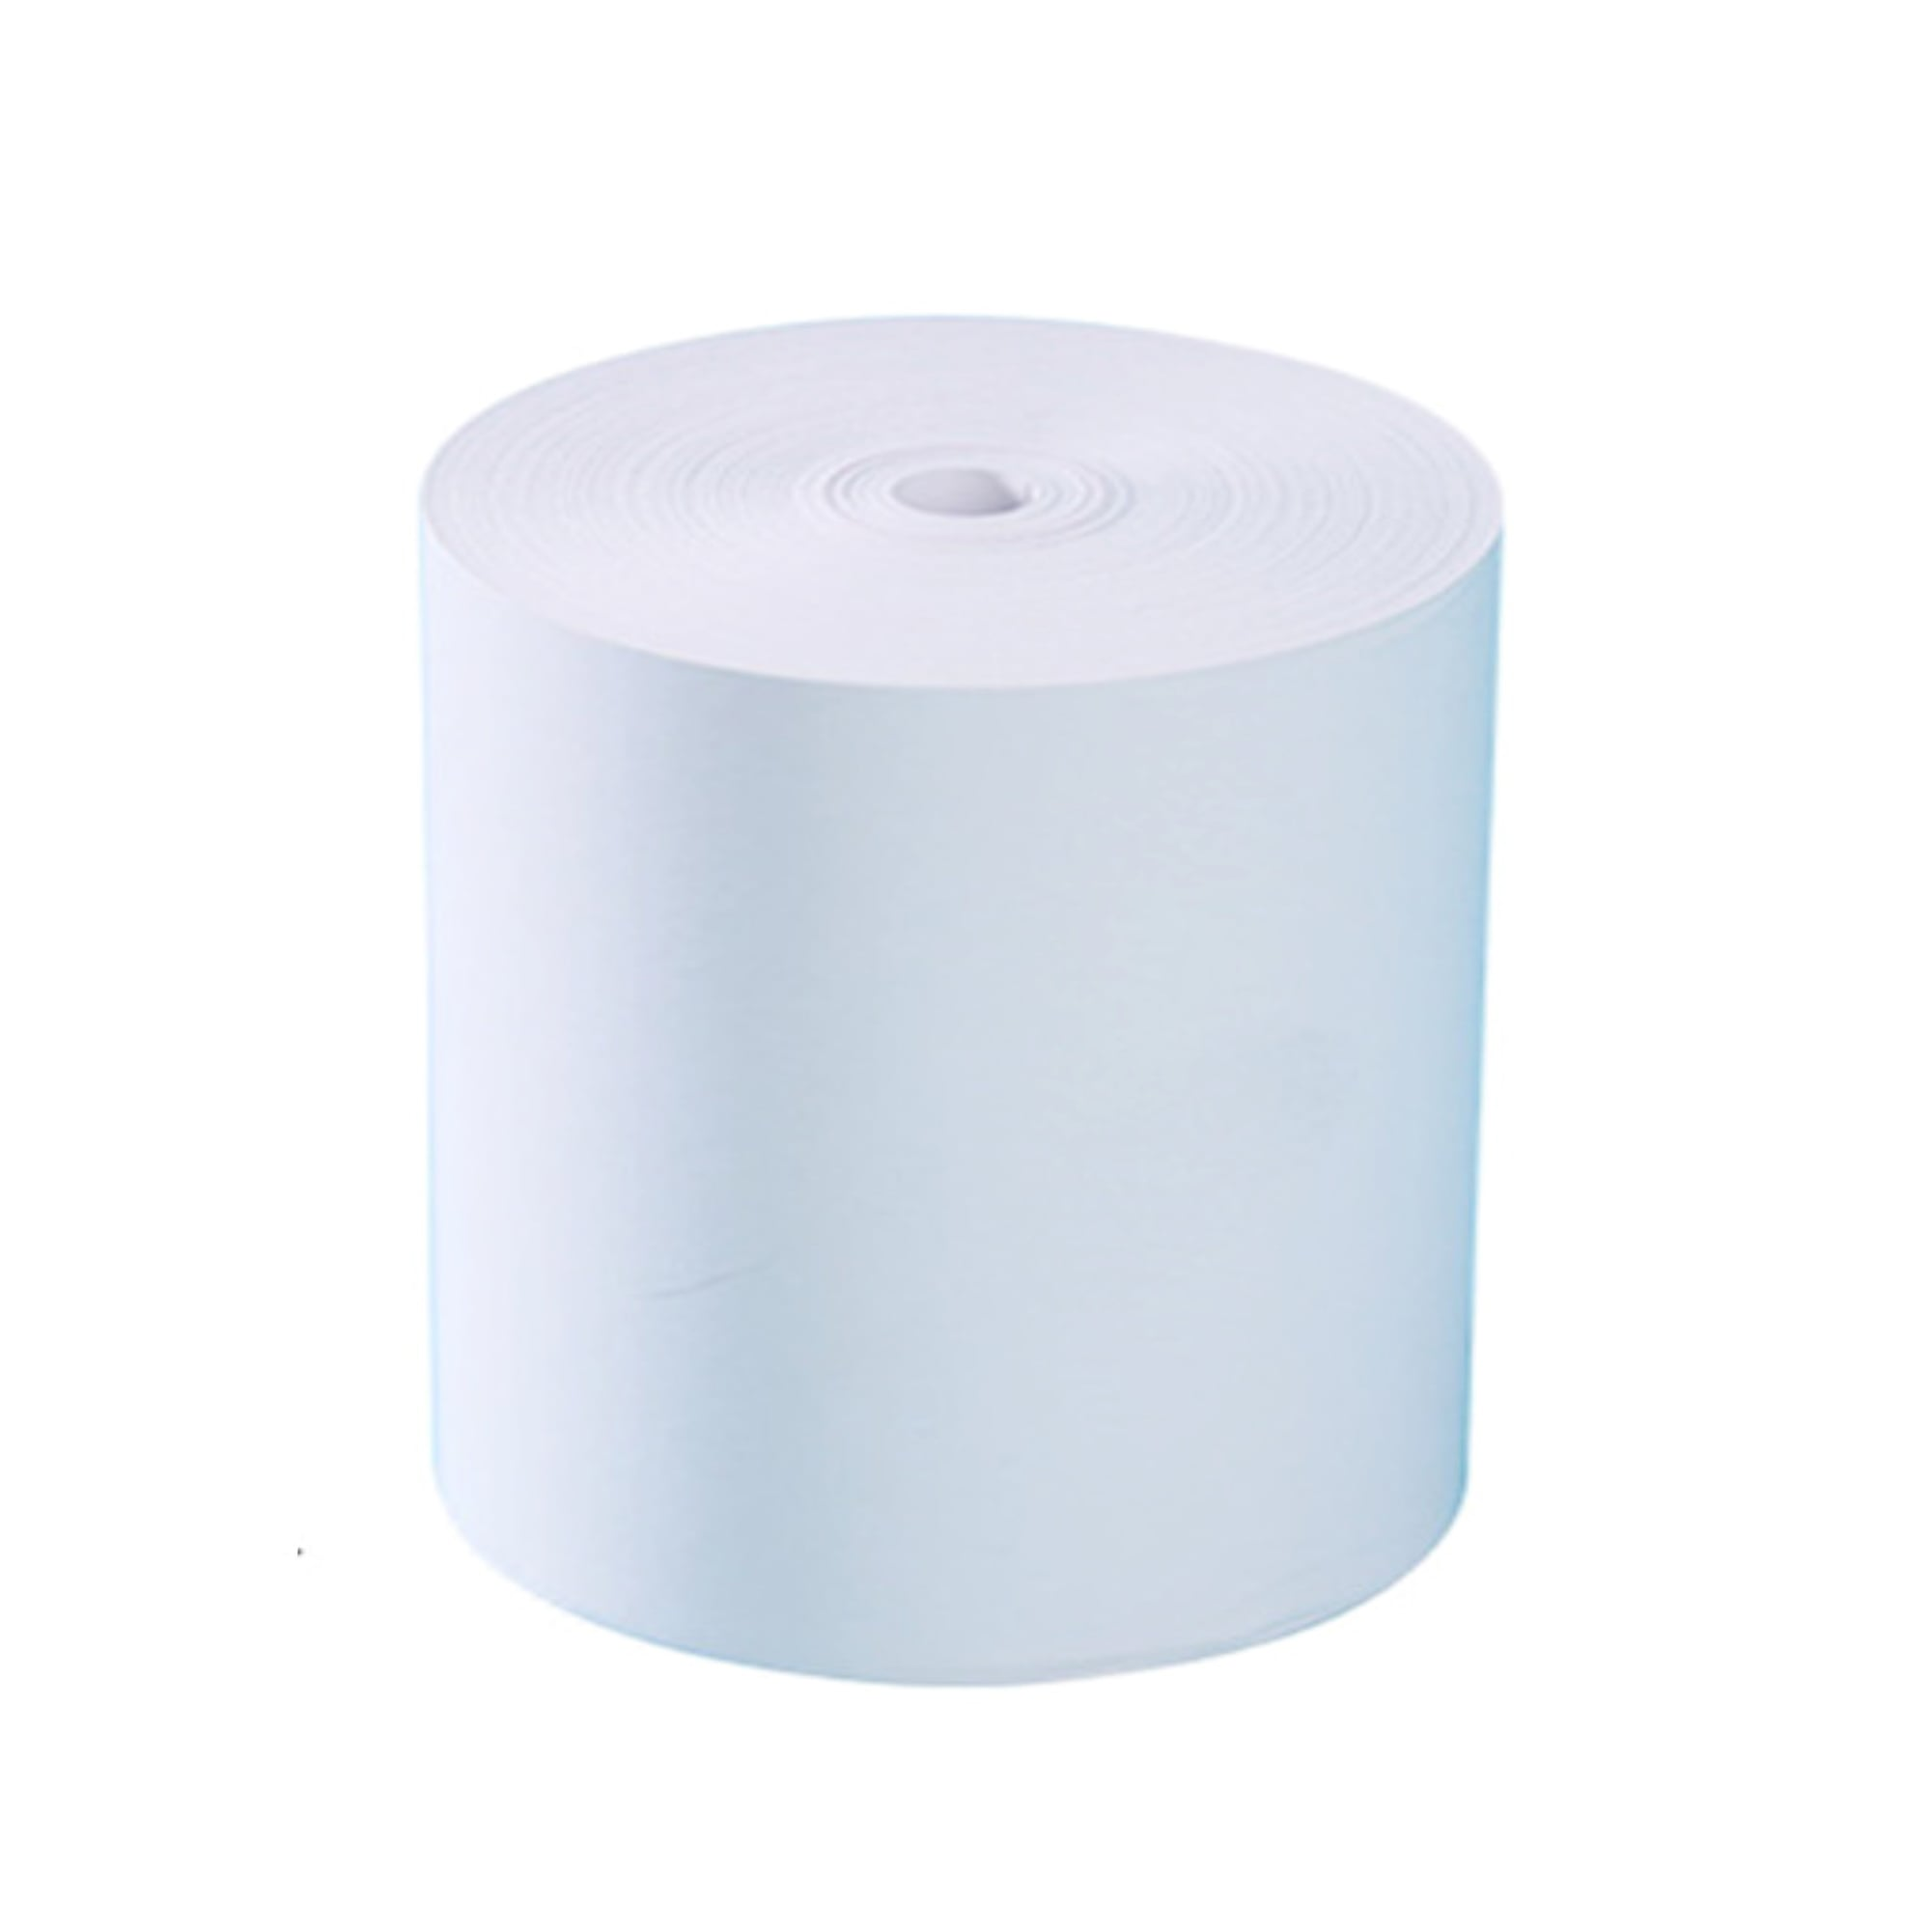 25 Rolls 80 x 80mm Thermal Paper Cash Register Receipt Rolls